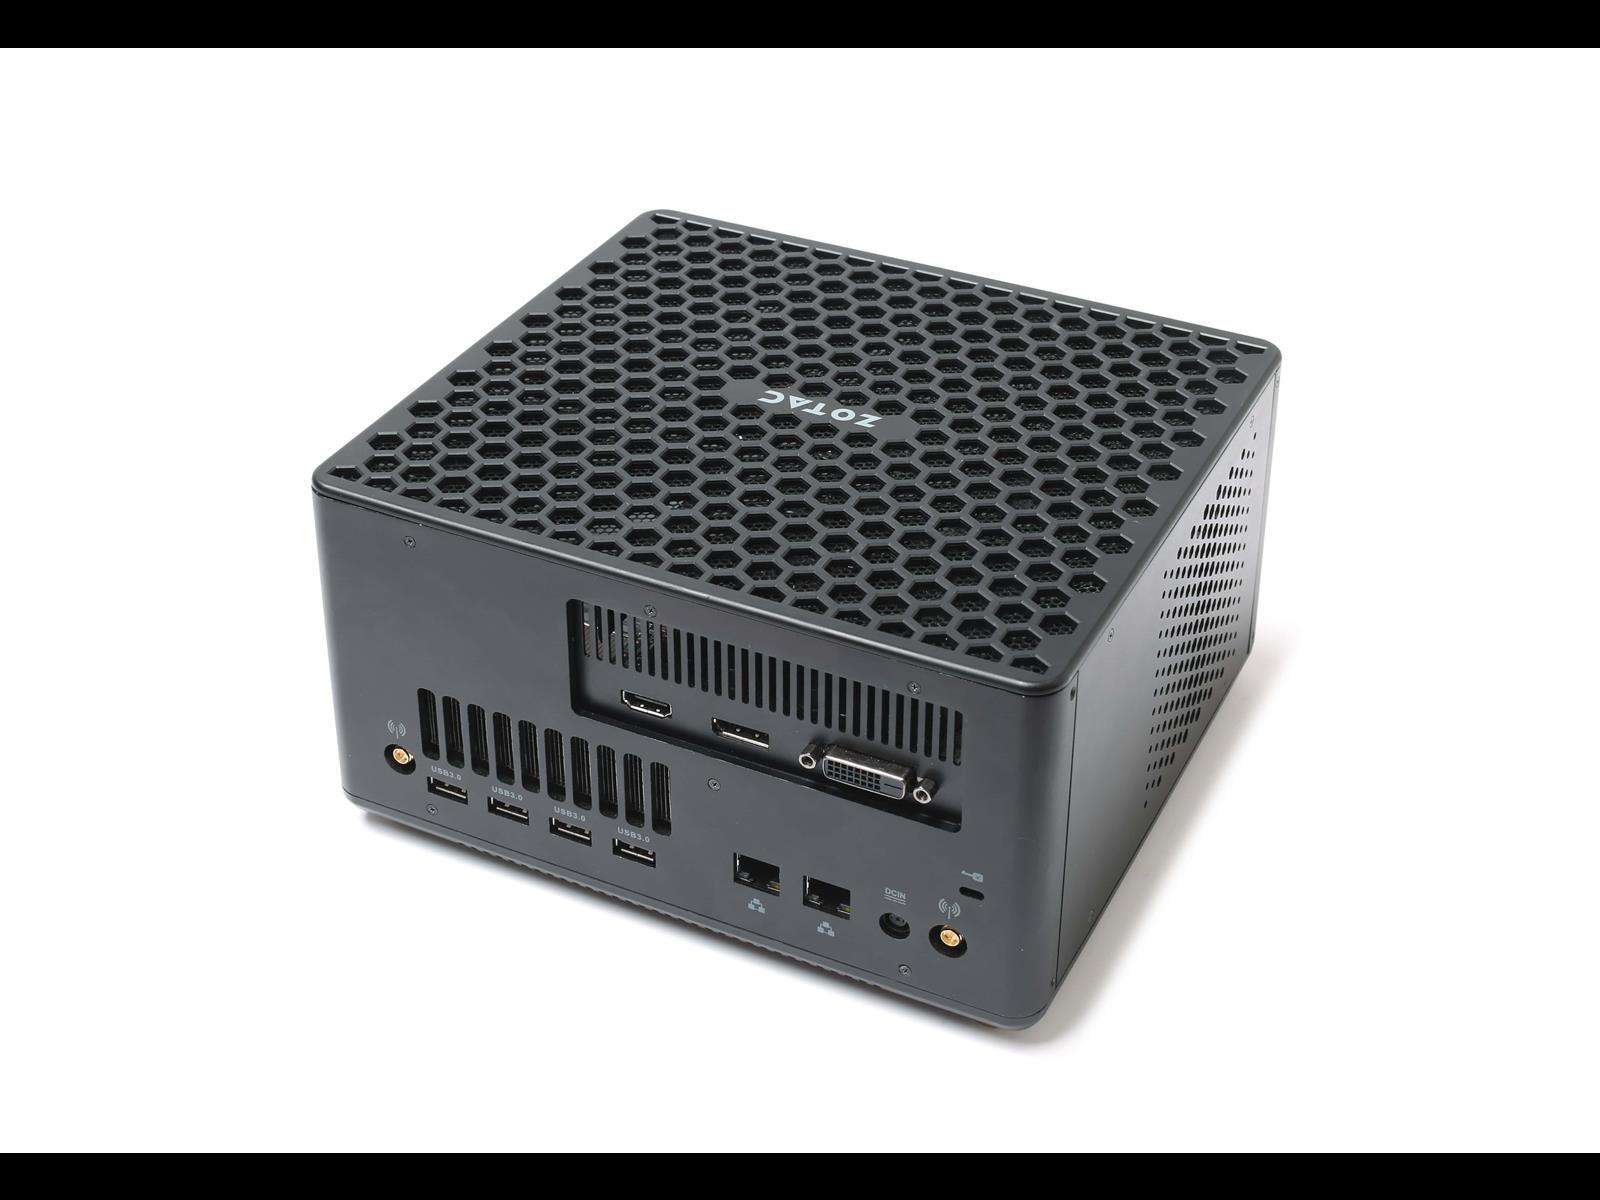 ZOTAC ZBOX Magnus EK3105T Mini Core i3-7100H 8GB RAM GeForce GTX 1050 Ti